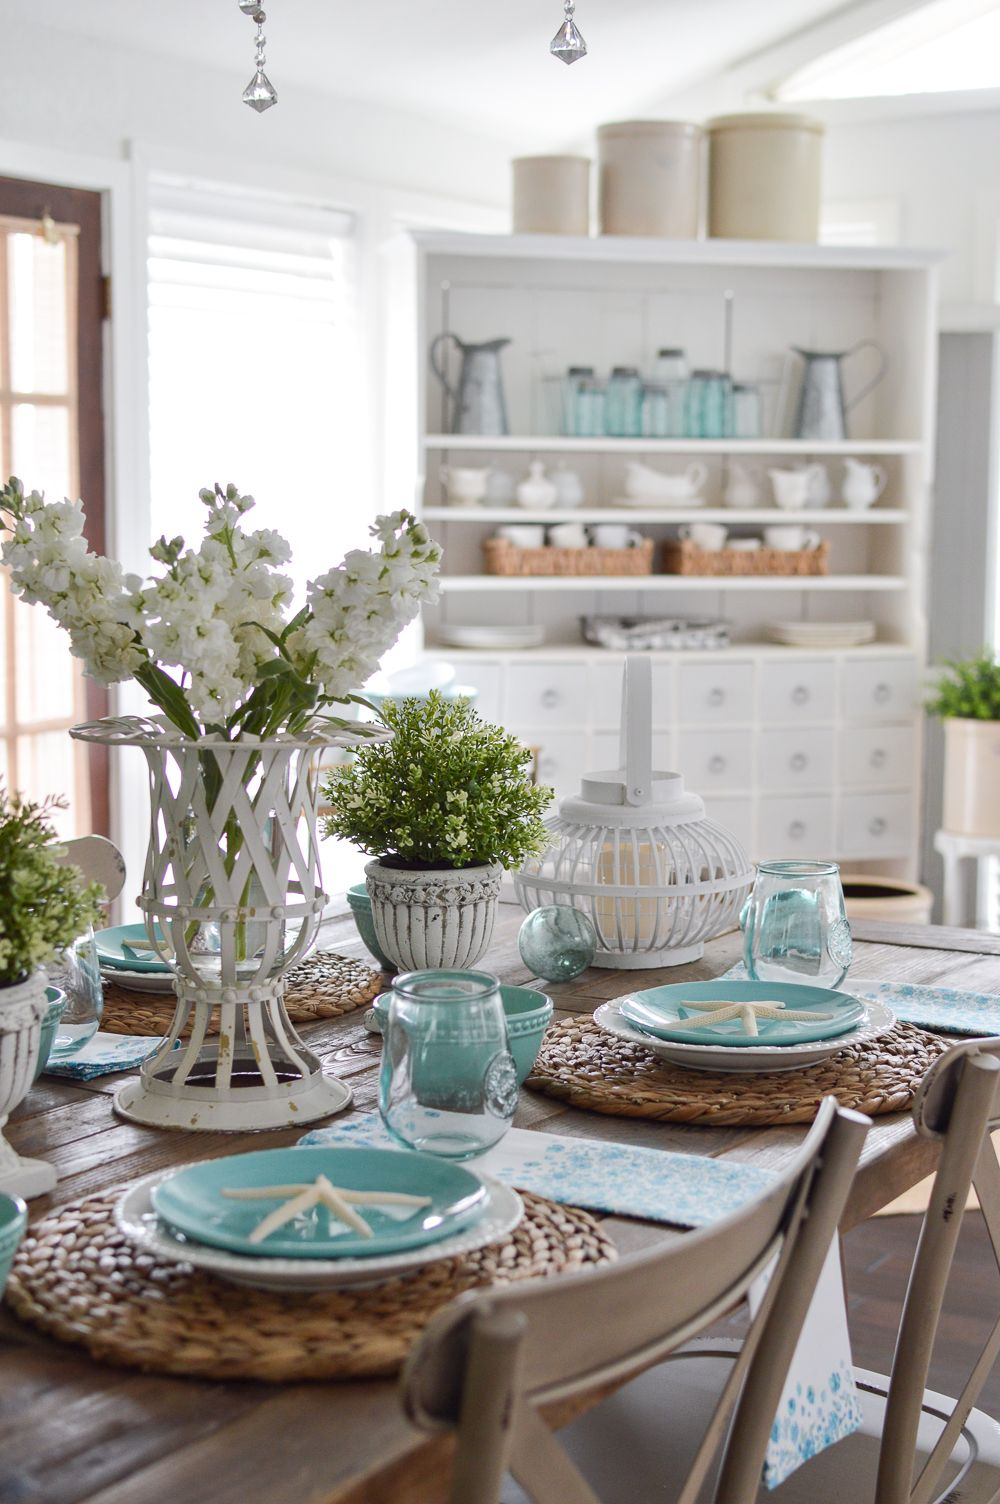 Simple Summer Decorating Ideas Dining Room Table Centerpieces